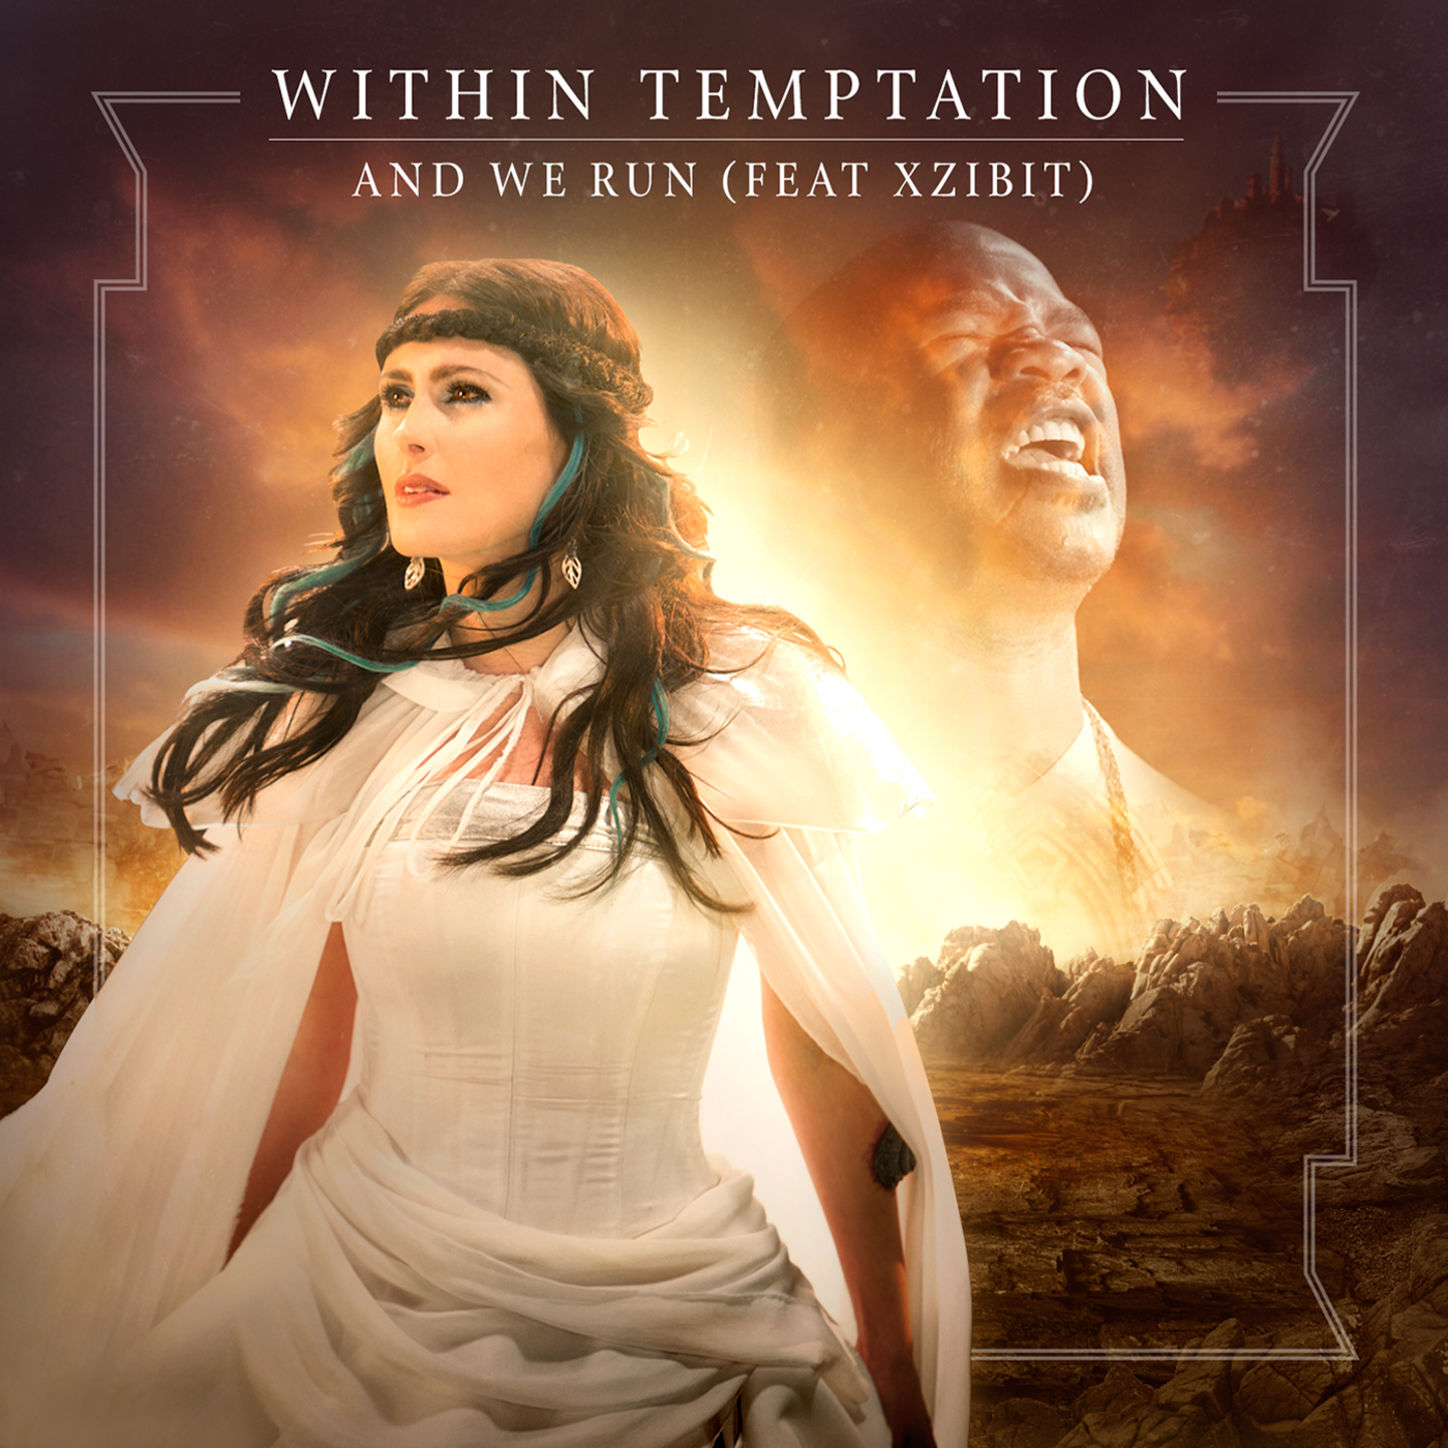 Within Temptation Xzibit And We Run EP